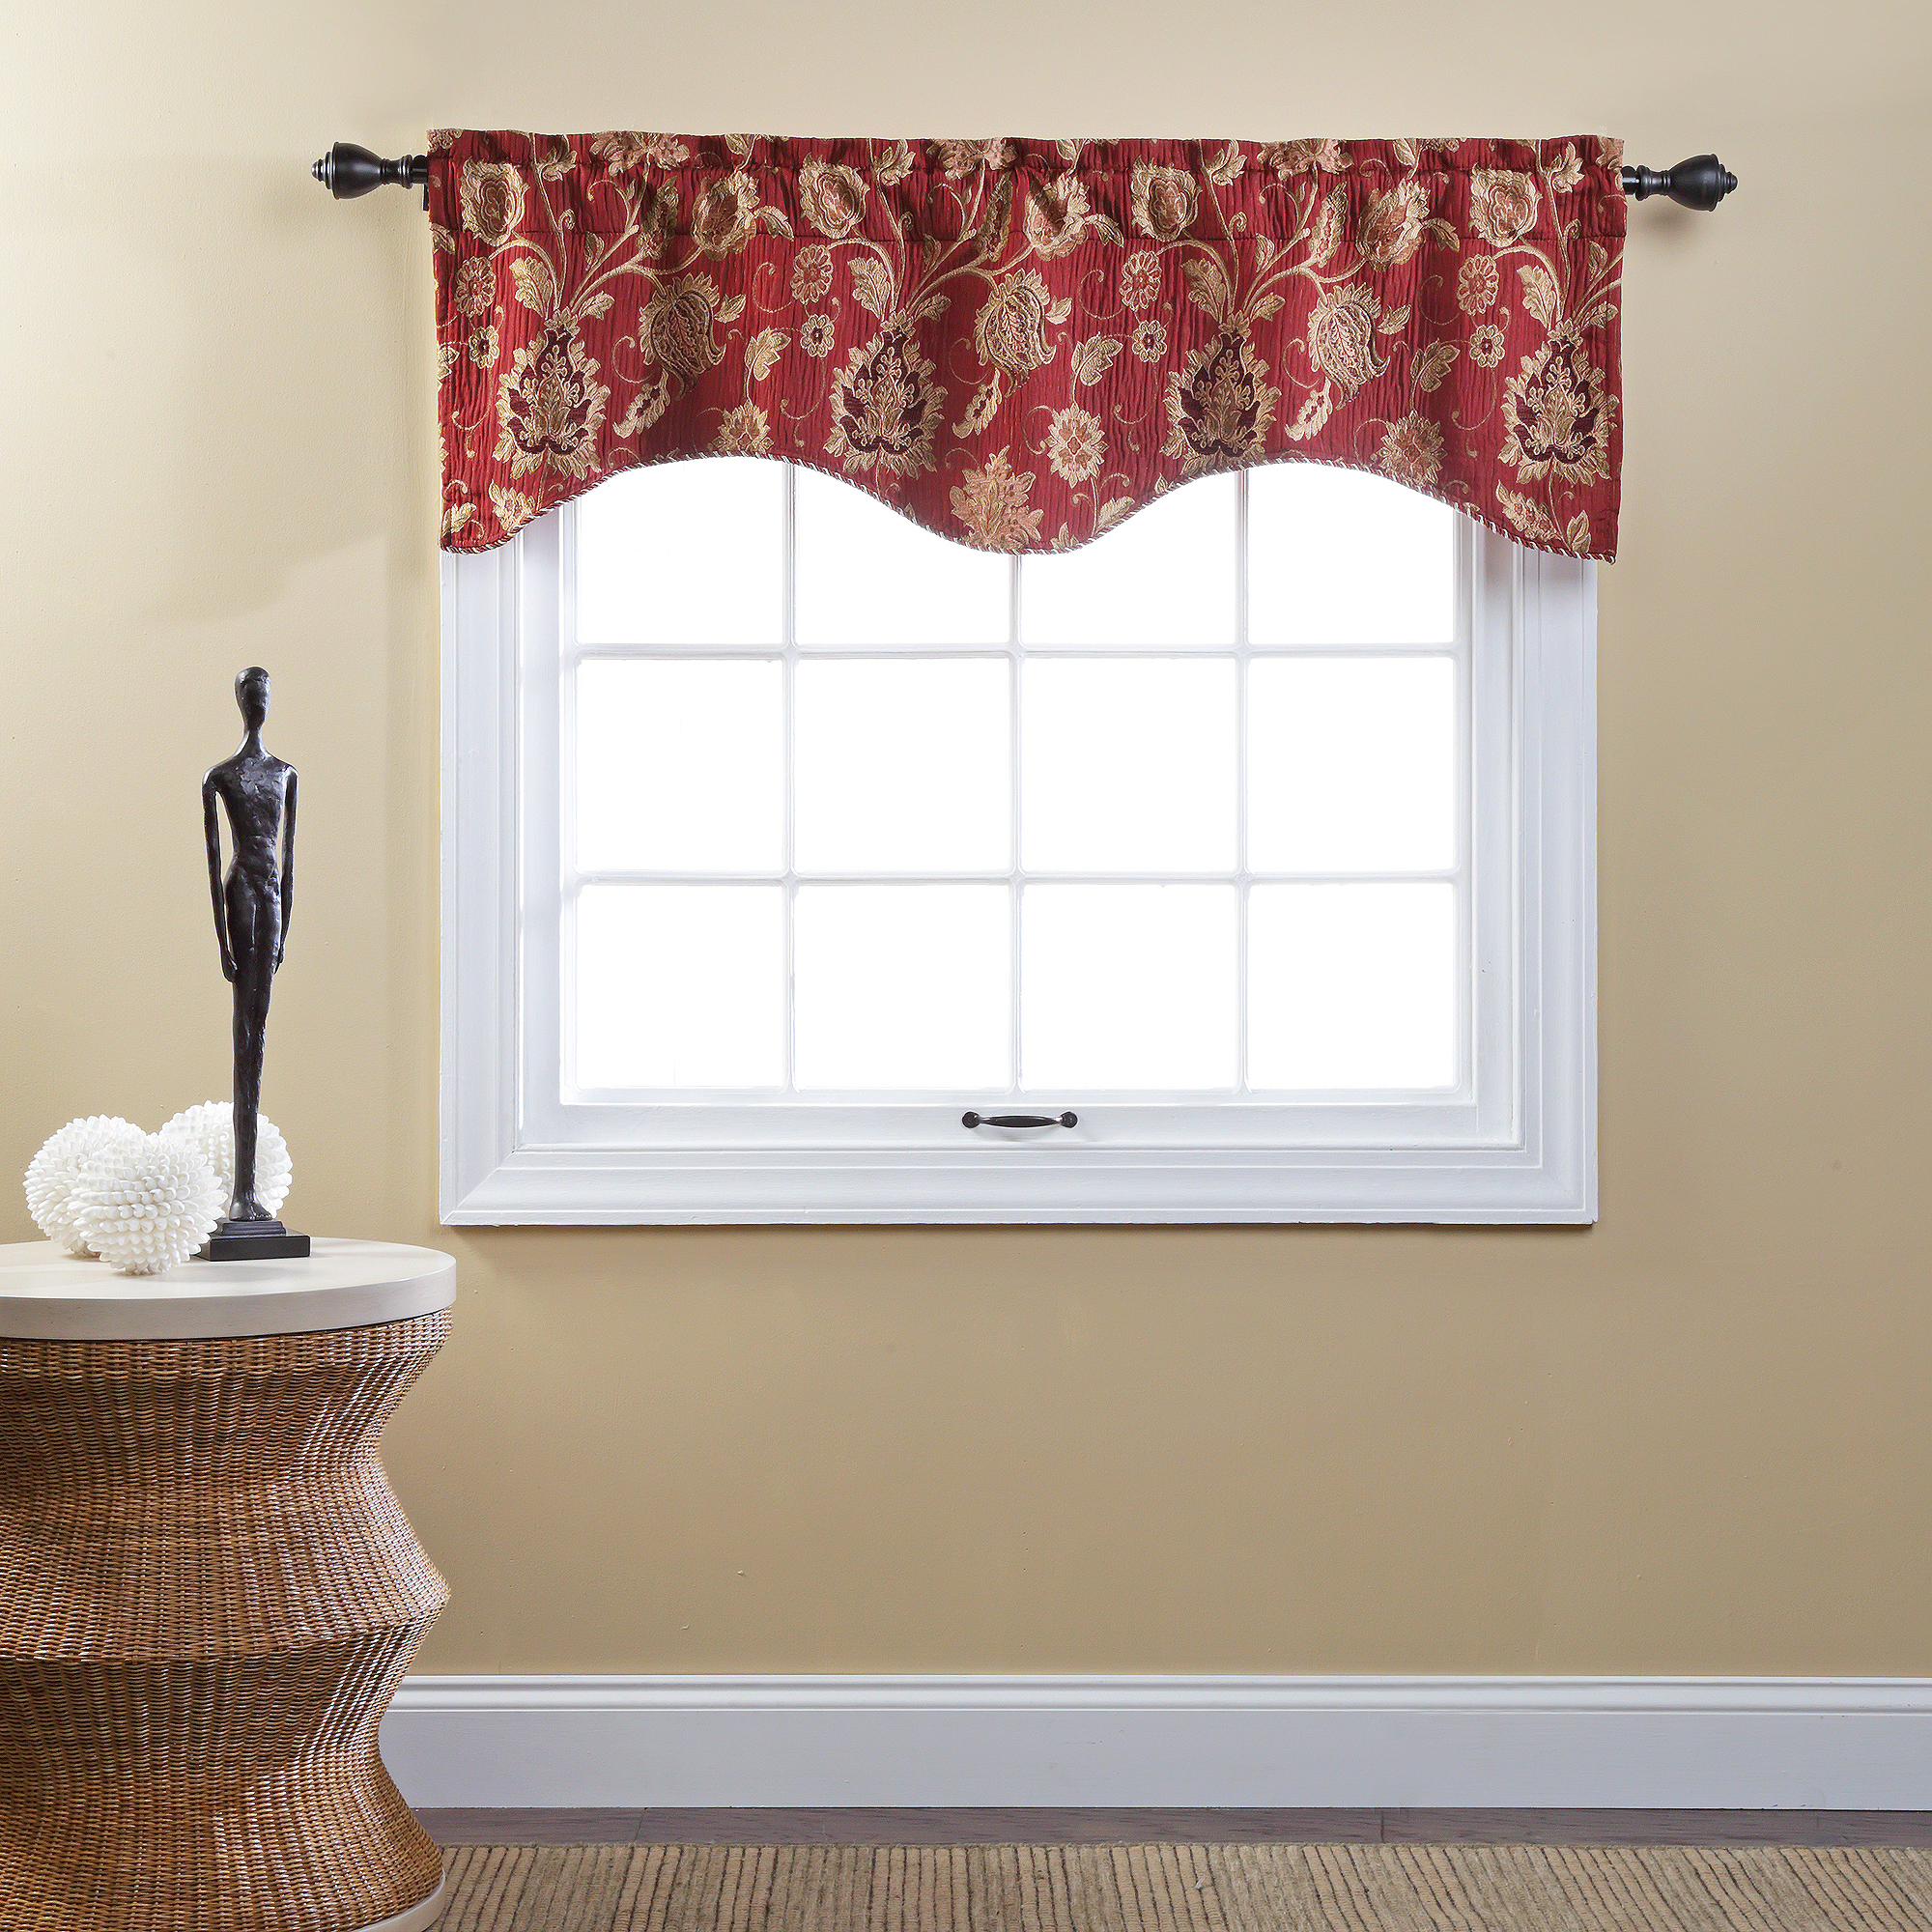 Better Homes and Gardens Gingham and Blooms Valance - Walmart.com